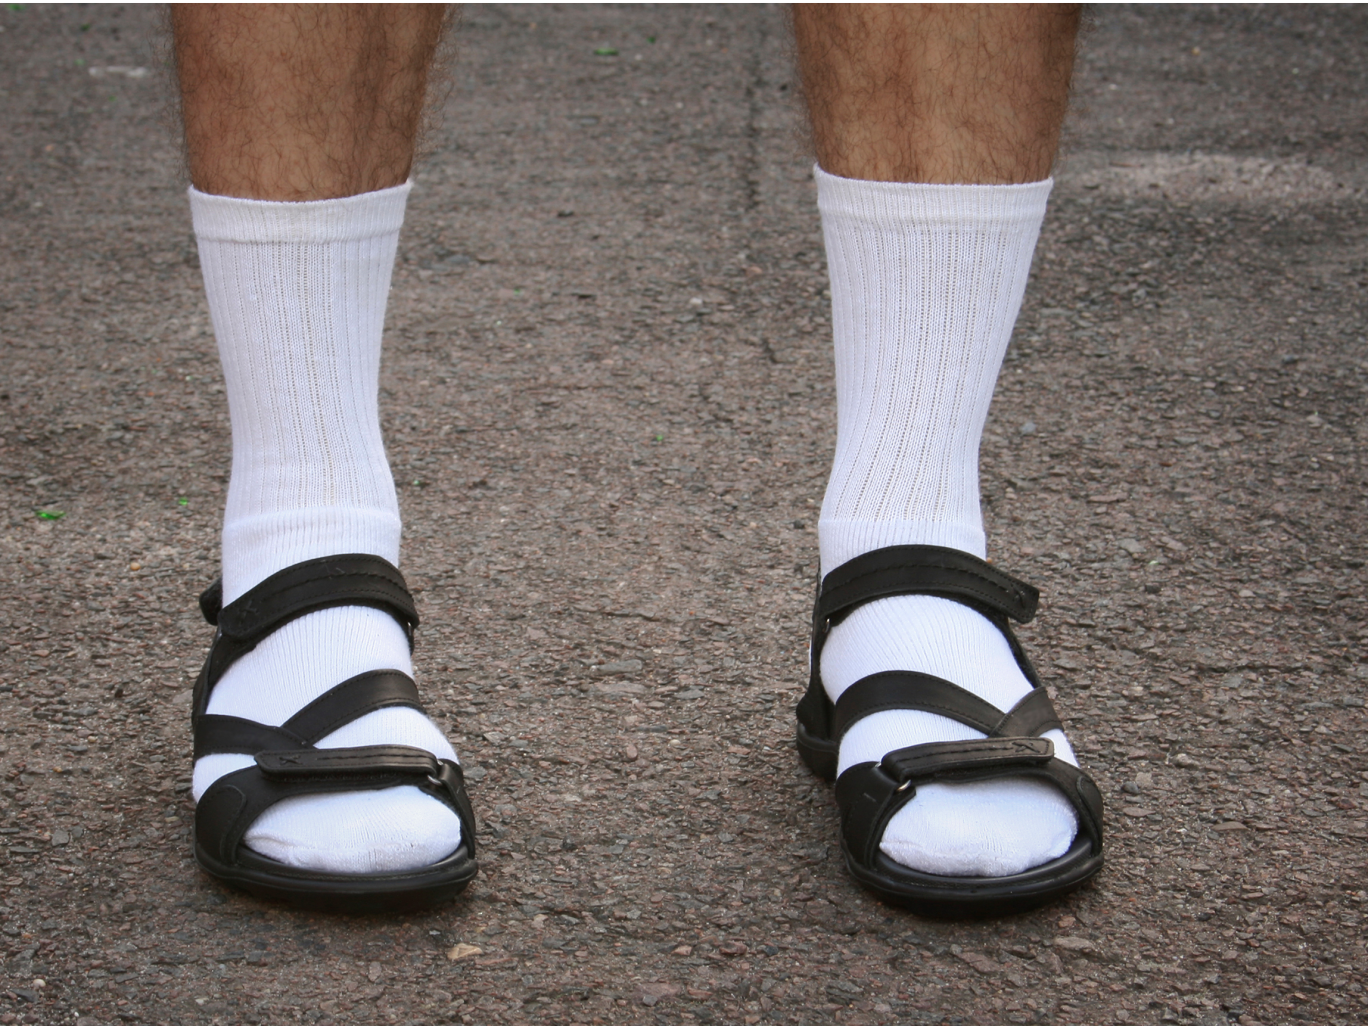 "oscarthewild's photos in ""Socks and sandals: The unlikely hottest new trend in men's fashion"""